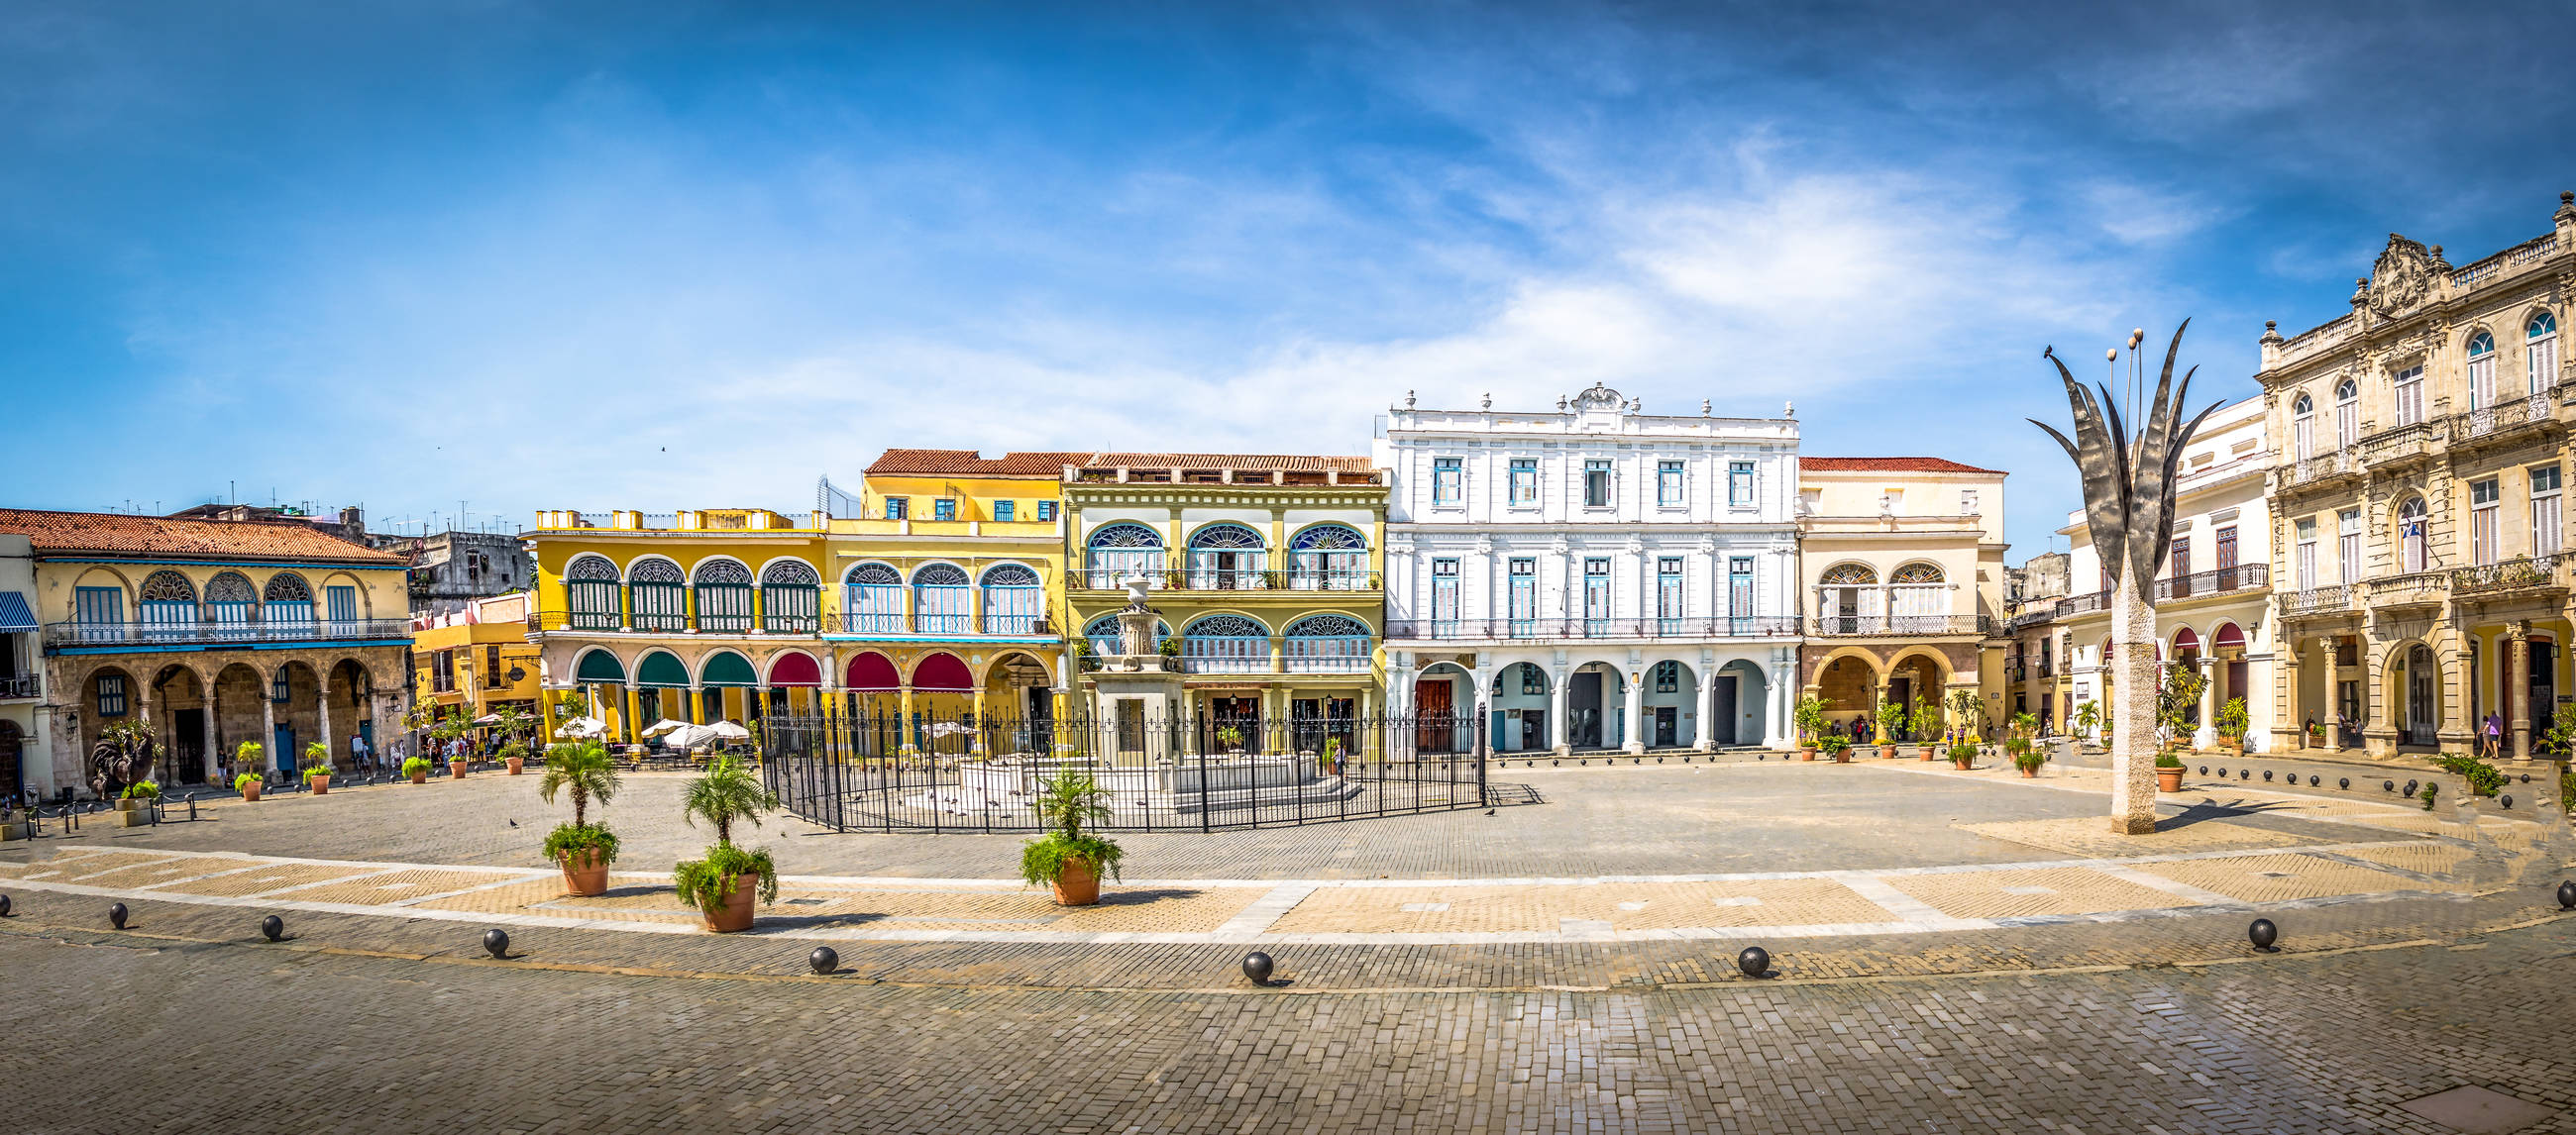 7-Places-You-Need-to-See-in-Cuba-Right-Now